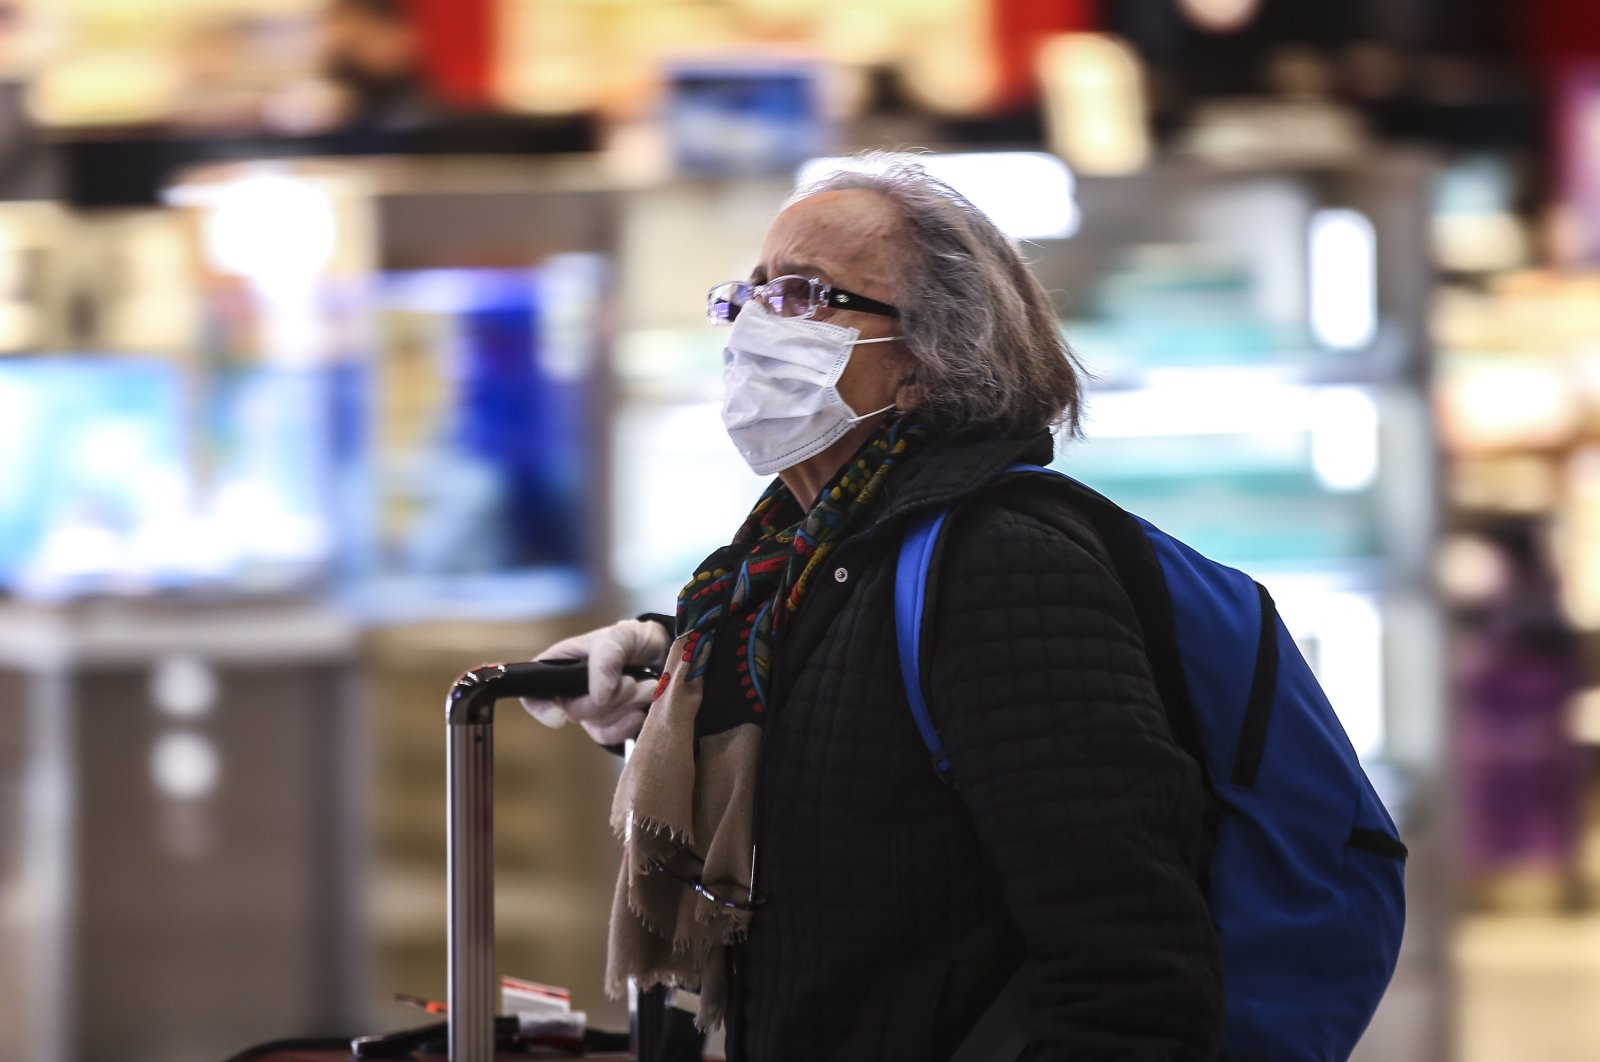 A Turkish citizen wearing a surgical mask arrives at Istanbul Airport after traveling from the U.K. as part of an evacuation effort, Istanbul, Tuesday, March 17, 2020. (AA Photo)